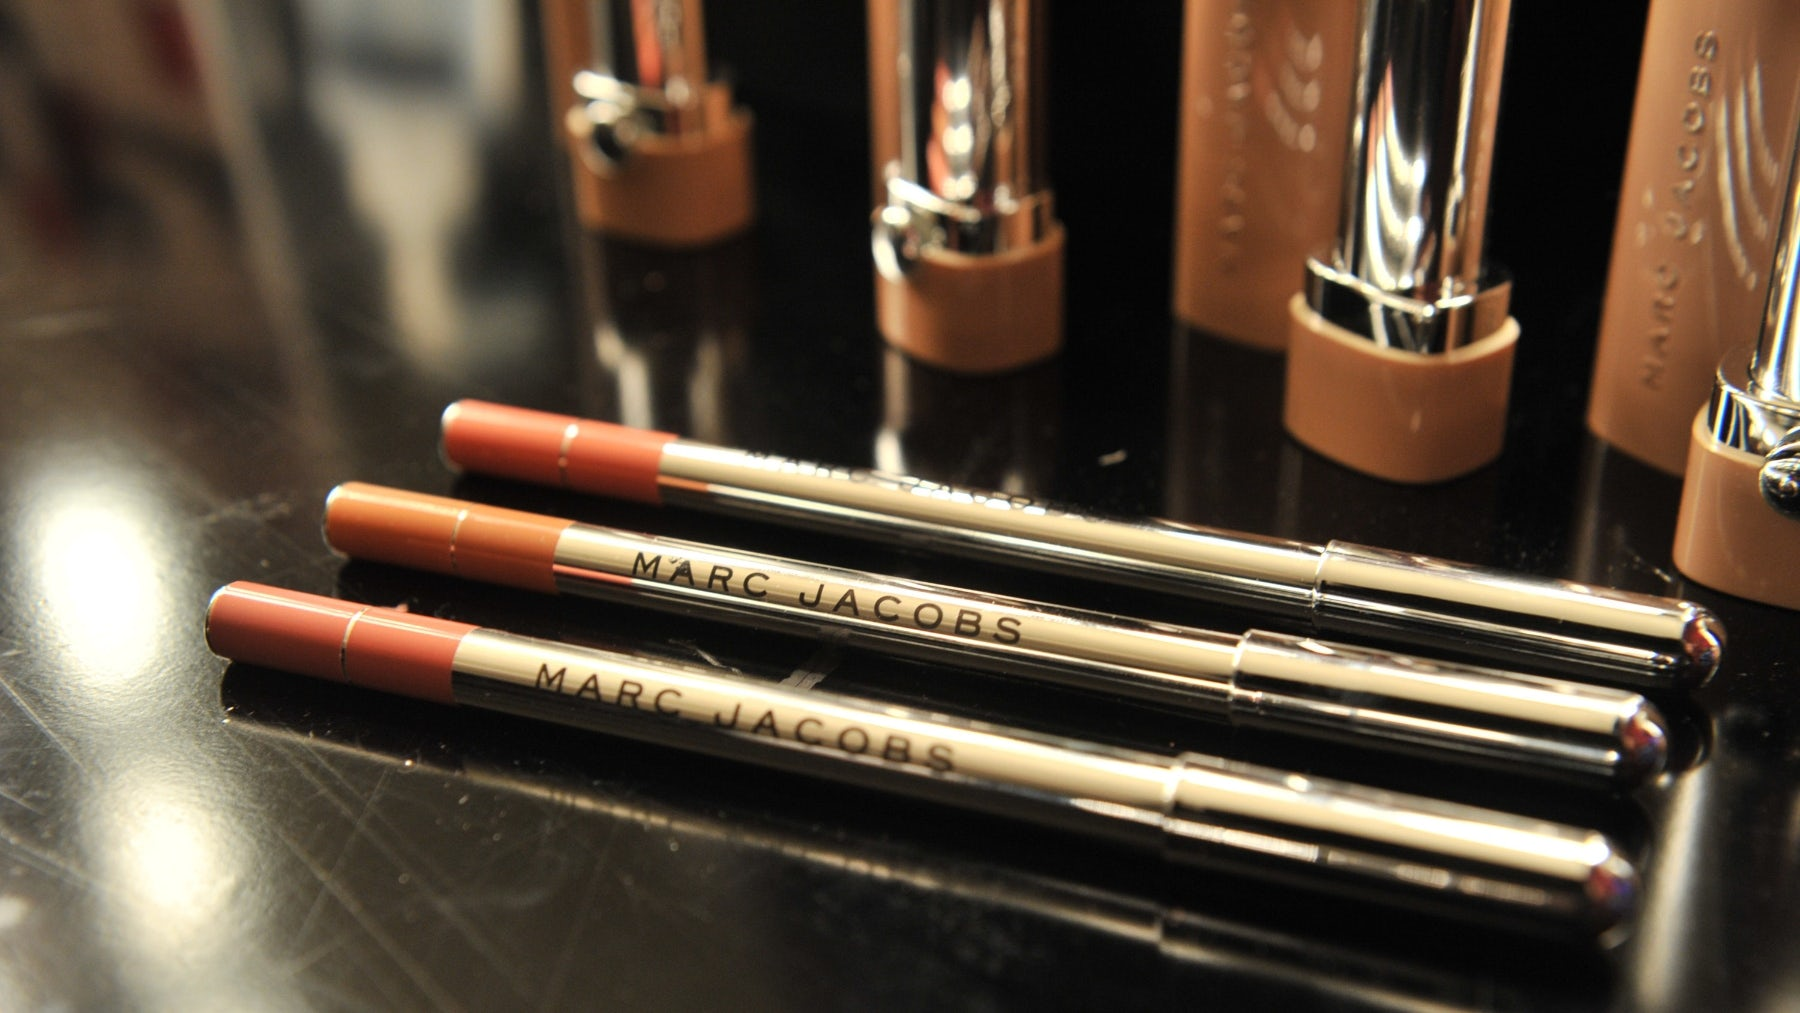 Marc Jacobs Beauty is exploring opportunities with a new partner as its licensing agreement with LVMH's Kendo comes to an end. Getty Images.